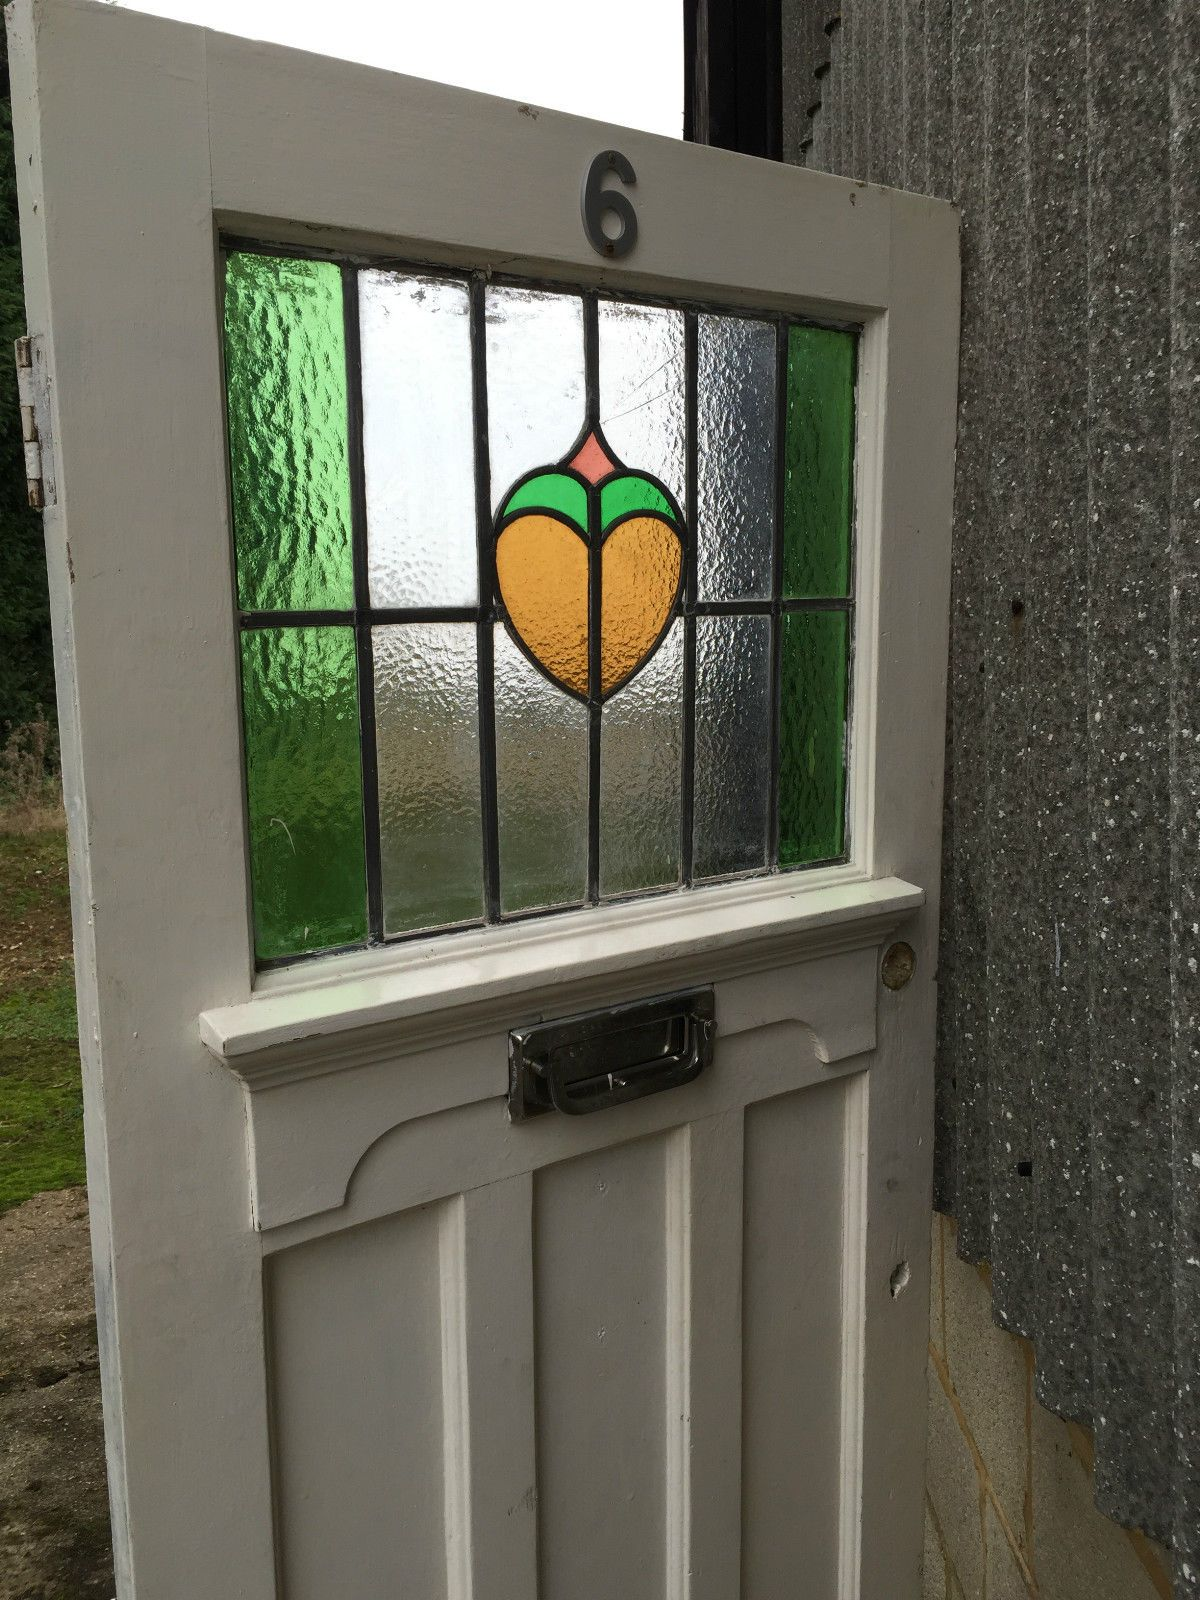 1930s wooden front door external stained glass period old antique